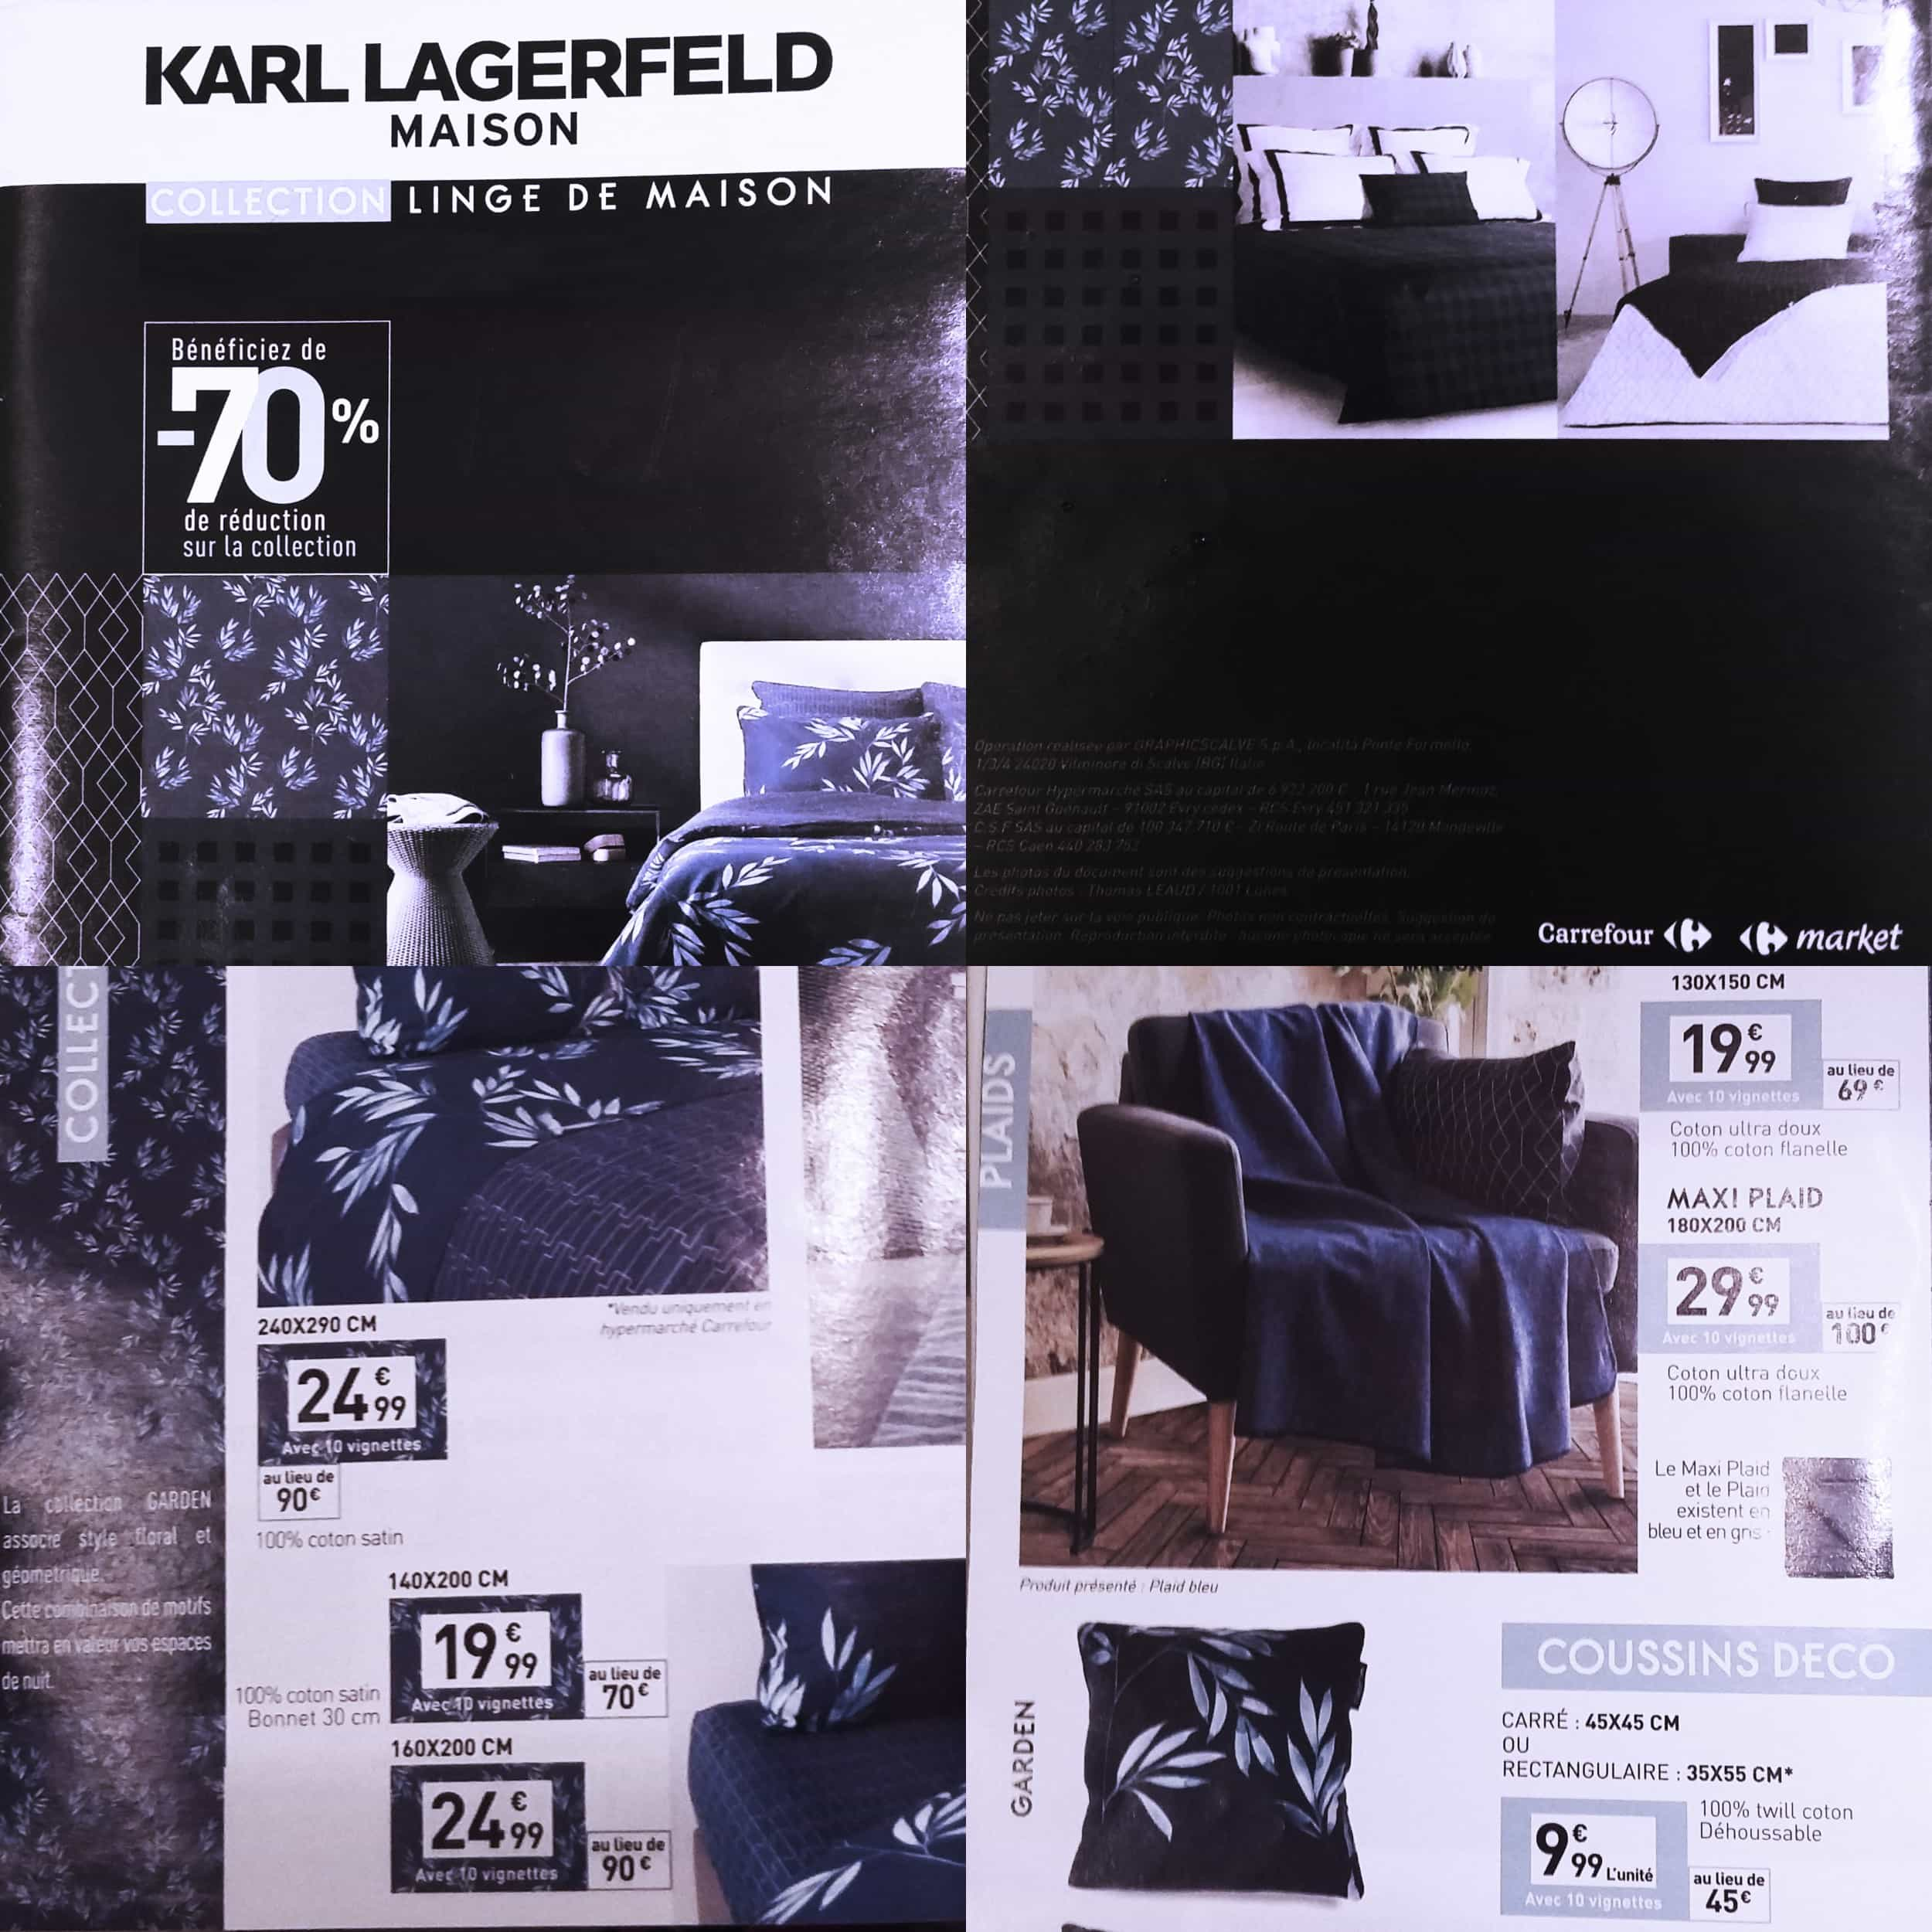 Karl Lagerfeld Maison collection in Carrefour